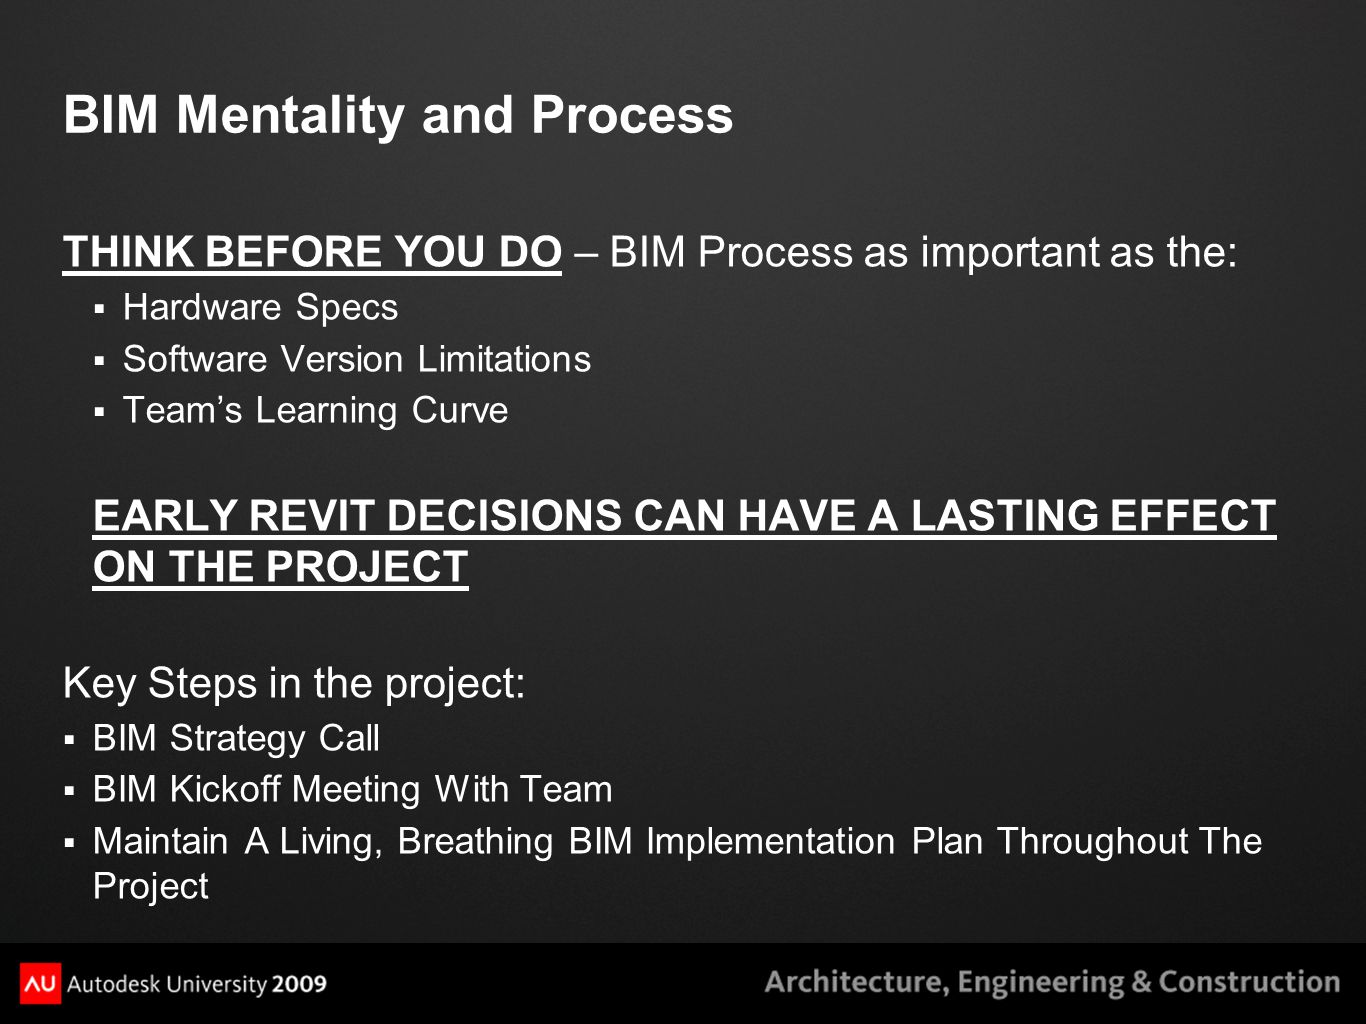 Summation and Closure  Survey User Level Experience Per Discipline (1-5)  Establish Expected/Specific/Realistic Tasks By Team Members In Each Discipline Model (Roles And Responsibilities – Put In BIM Implementation Plan)  Standards Are Key – Templates, Bim Implementation Plan, Organized Details And Content  Acceptance Of Working In Revit And How It Will Be Done On A Project Is Crucial….Everyone Must Be On The Same Page 1Brand New User 2Worked On 1-2 Revit Projects 3Can Resolve Coordination Review Issues 4Can Fix Warnings; Cleans Up Workset Classification 5Advanced Parametric Family Creation; Revit Discipline Lead